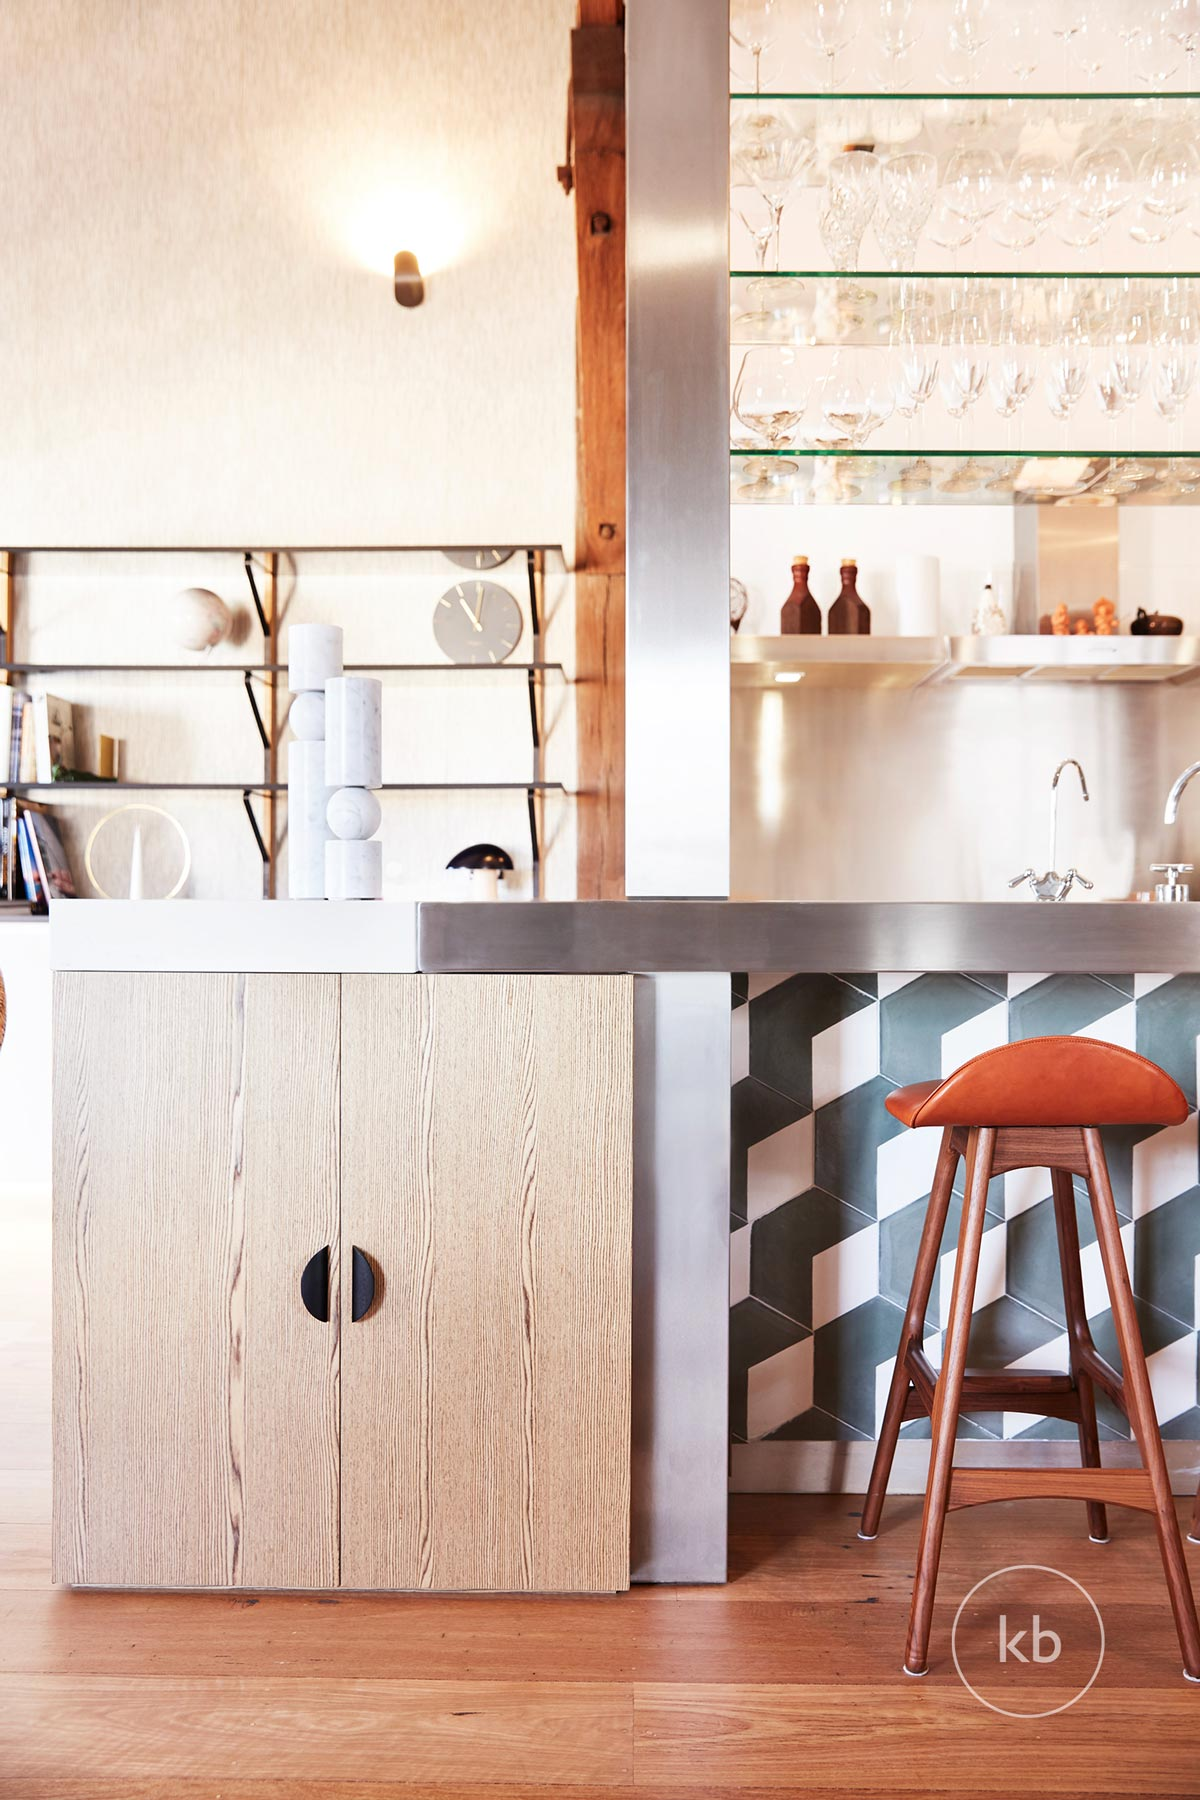 ©-Kate-Bell-Interior-Architecture-and-Design-08-Pyrmont-Project-Kitchen-01.jpg